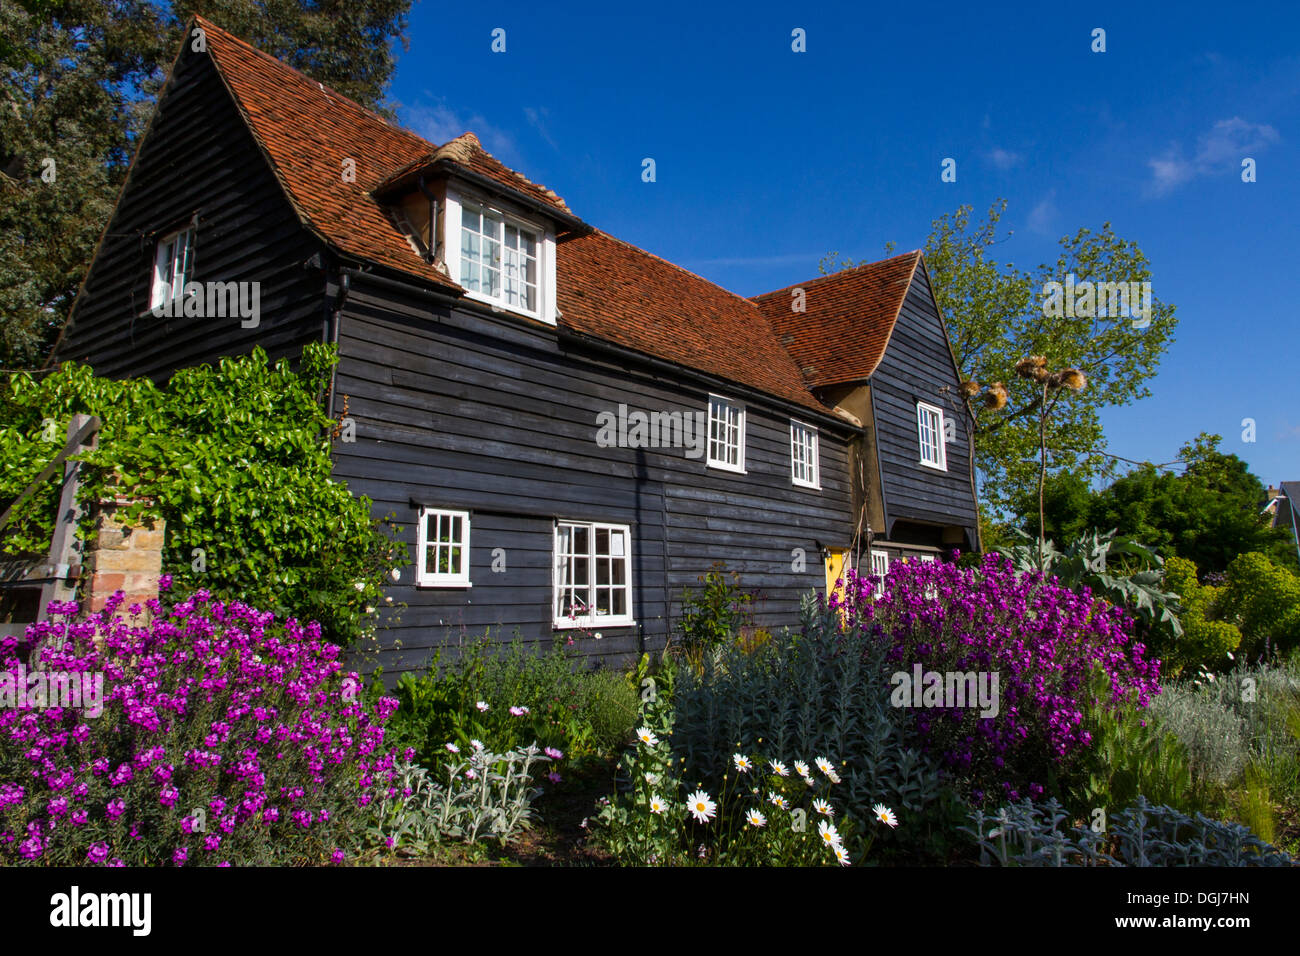 Clapboard or weatherboard house at Maldon in Essex. - Stock Image